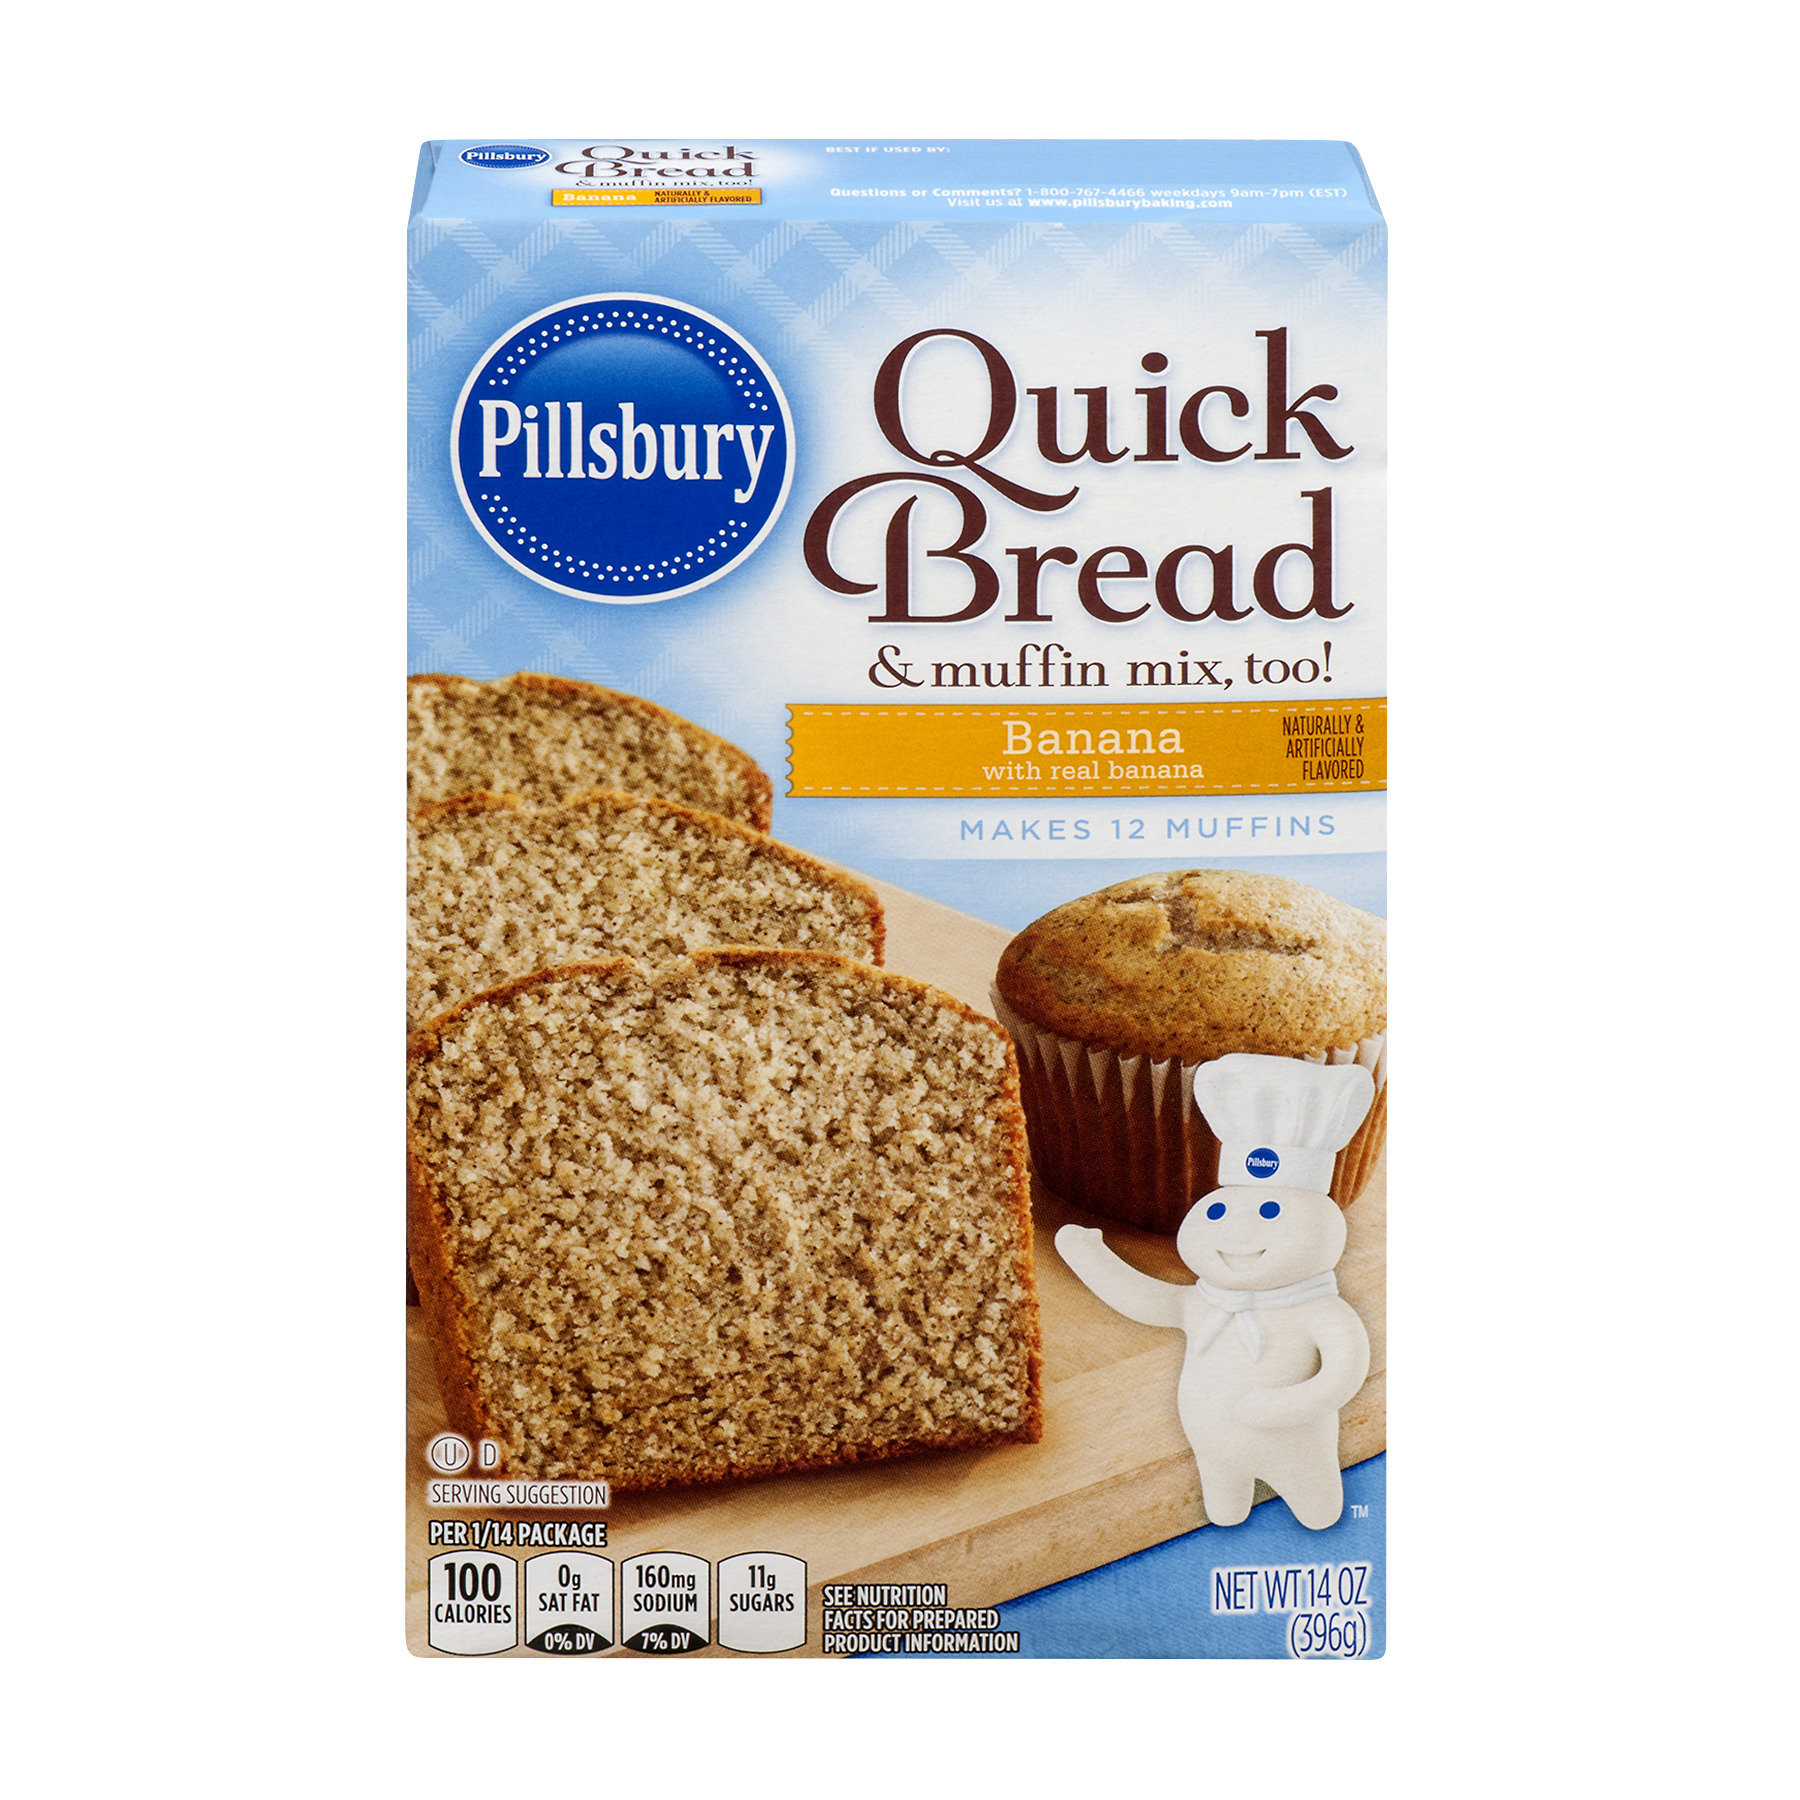 Pillsbury Quick Bread Banana, 14.0 OZ